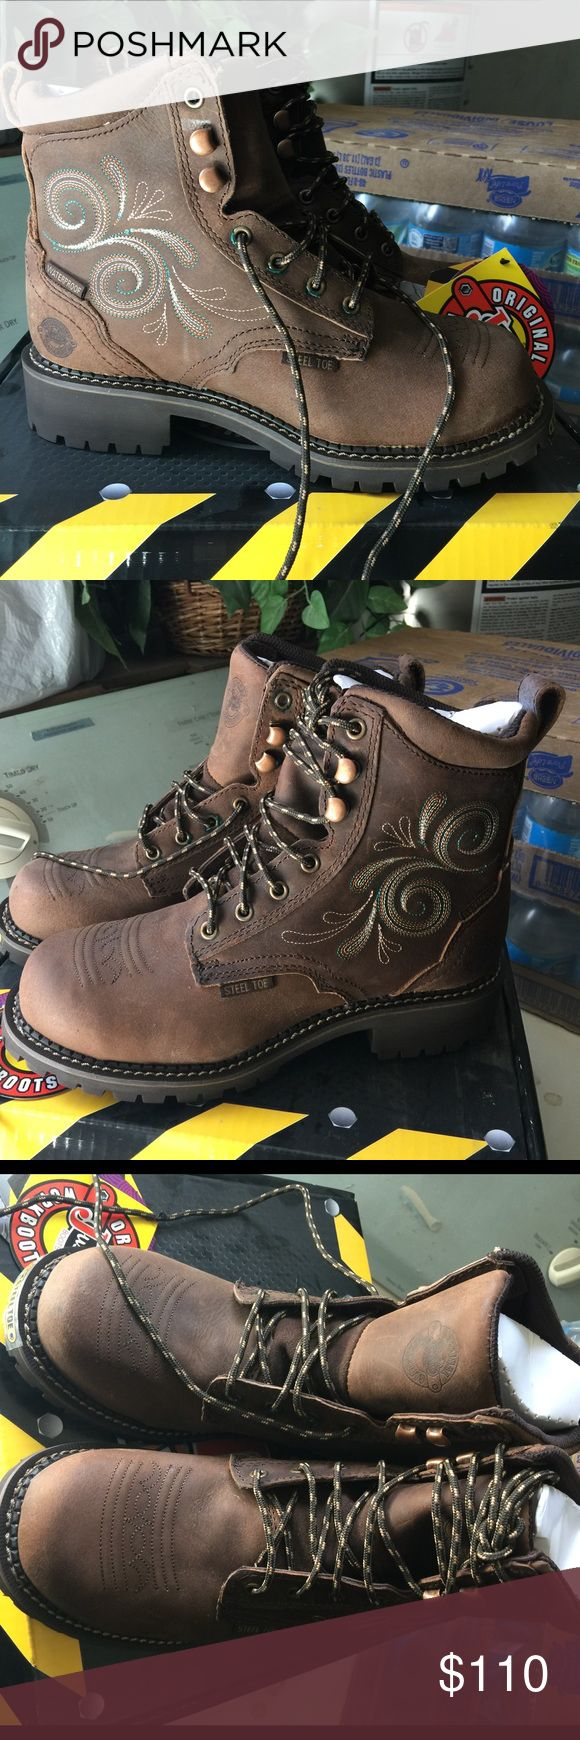 Justin work boots. These are steel toe shoes for work/hiking/tracking or rough handling. Not suited for electric work.  Very very durable. Comes with original box. NWT Justin Boots Shoes Combat & Moto Boots